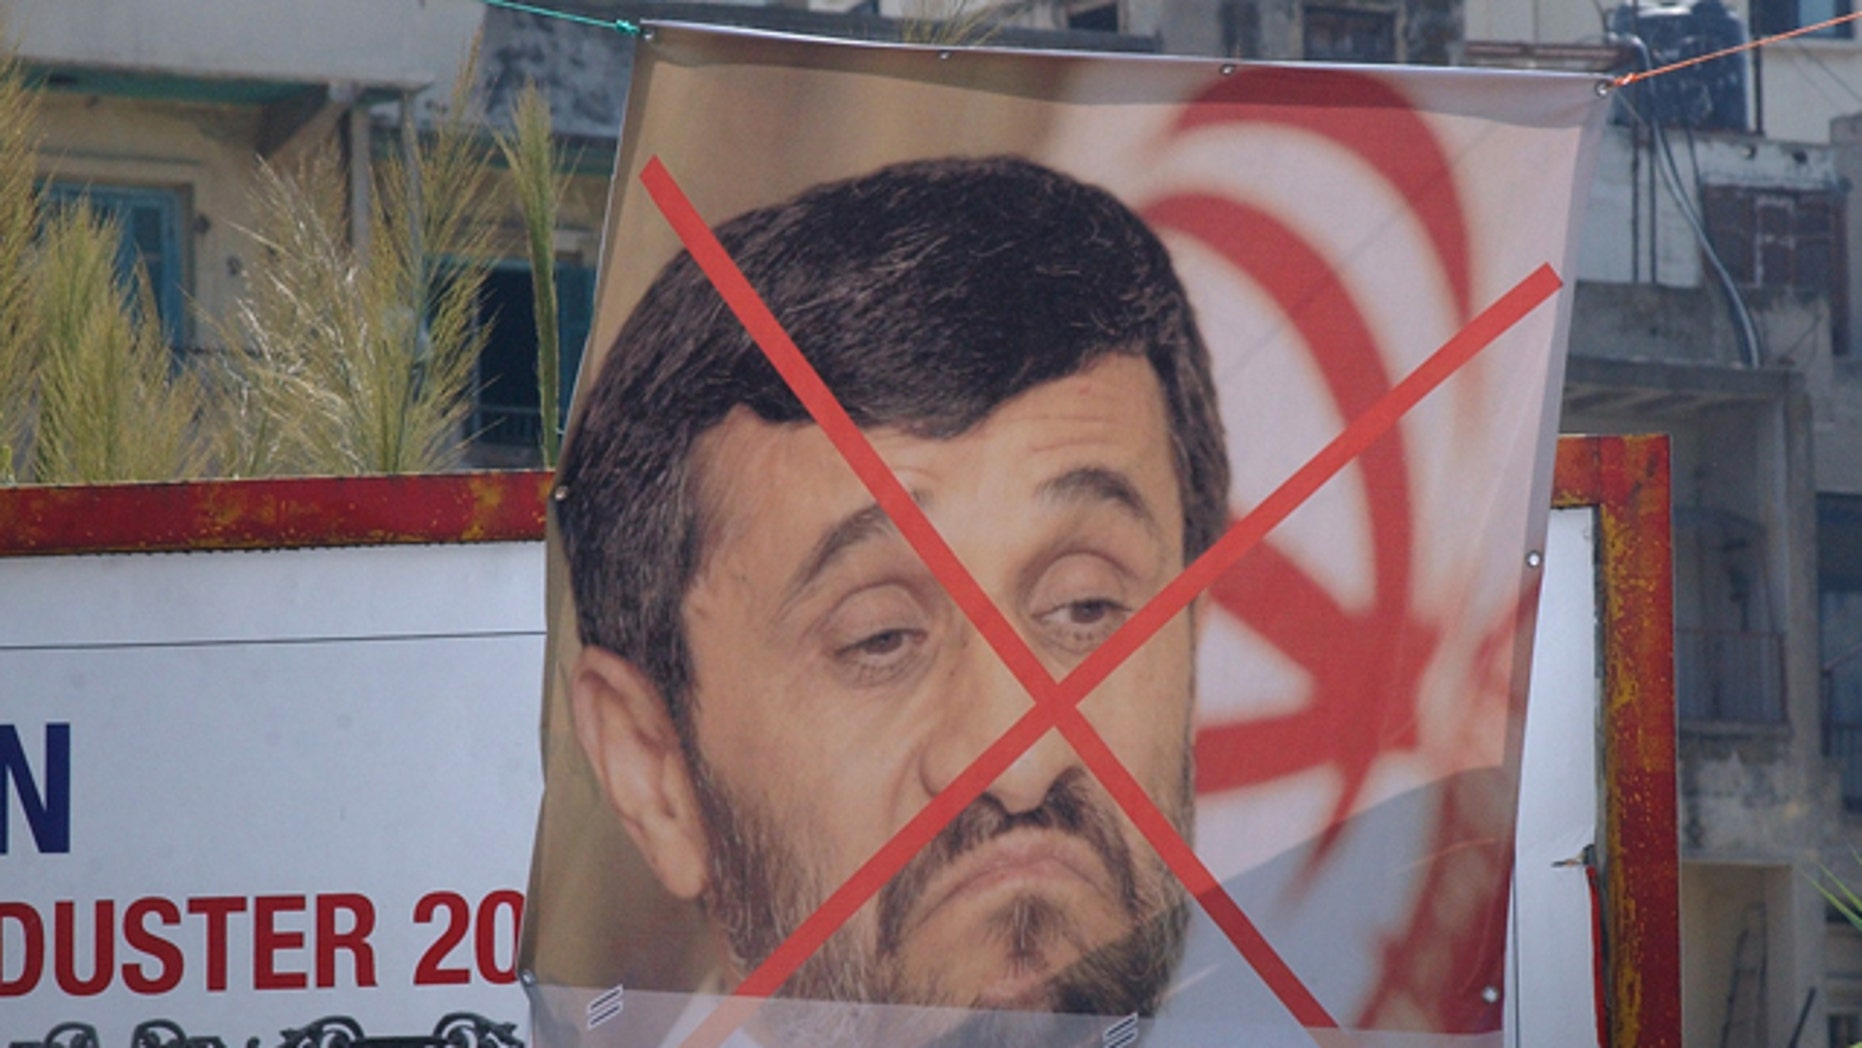 Oct. 7, 2010: A poster protesting Iranian President Mahmoud Ahmadinejad's visit to Lebanon, which begins October 13. Lebanon is a hotbed of Islamic fundamentalism.